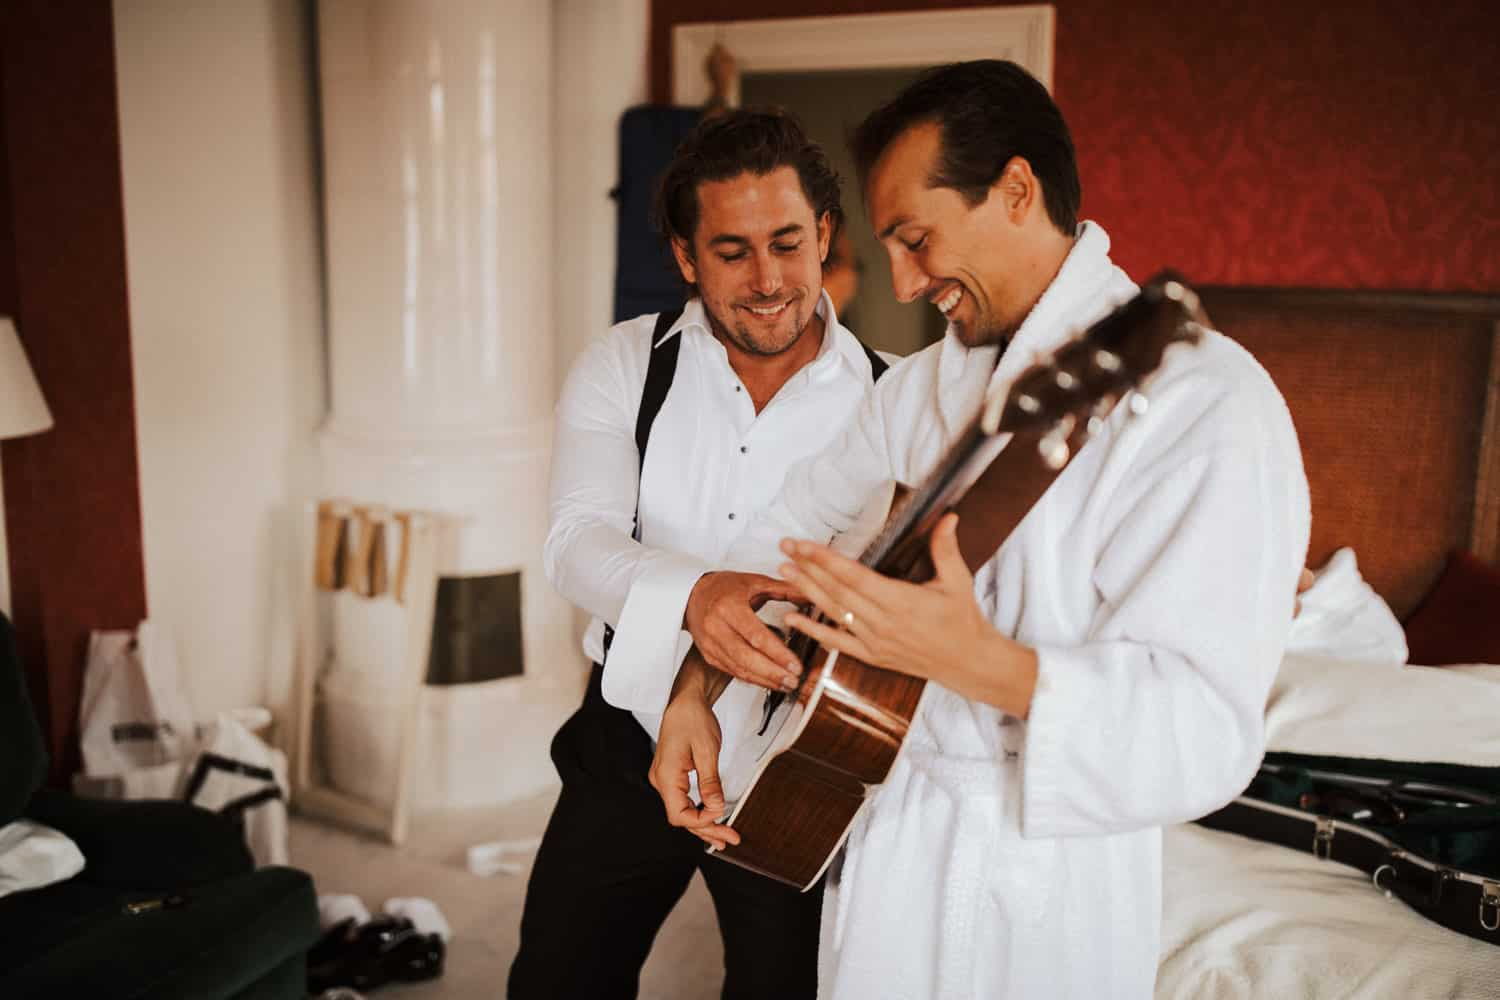 A groomsman is playing the guitar for the groom.